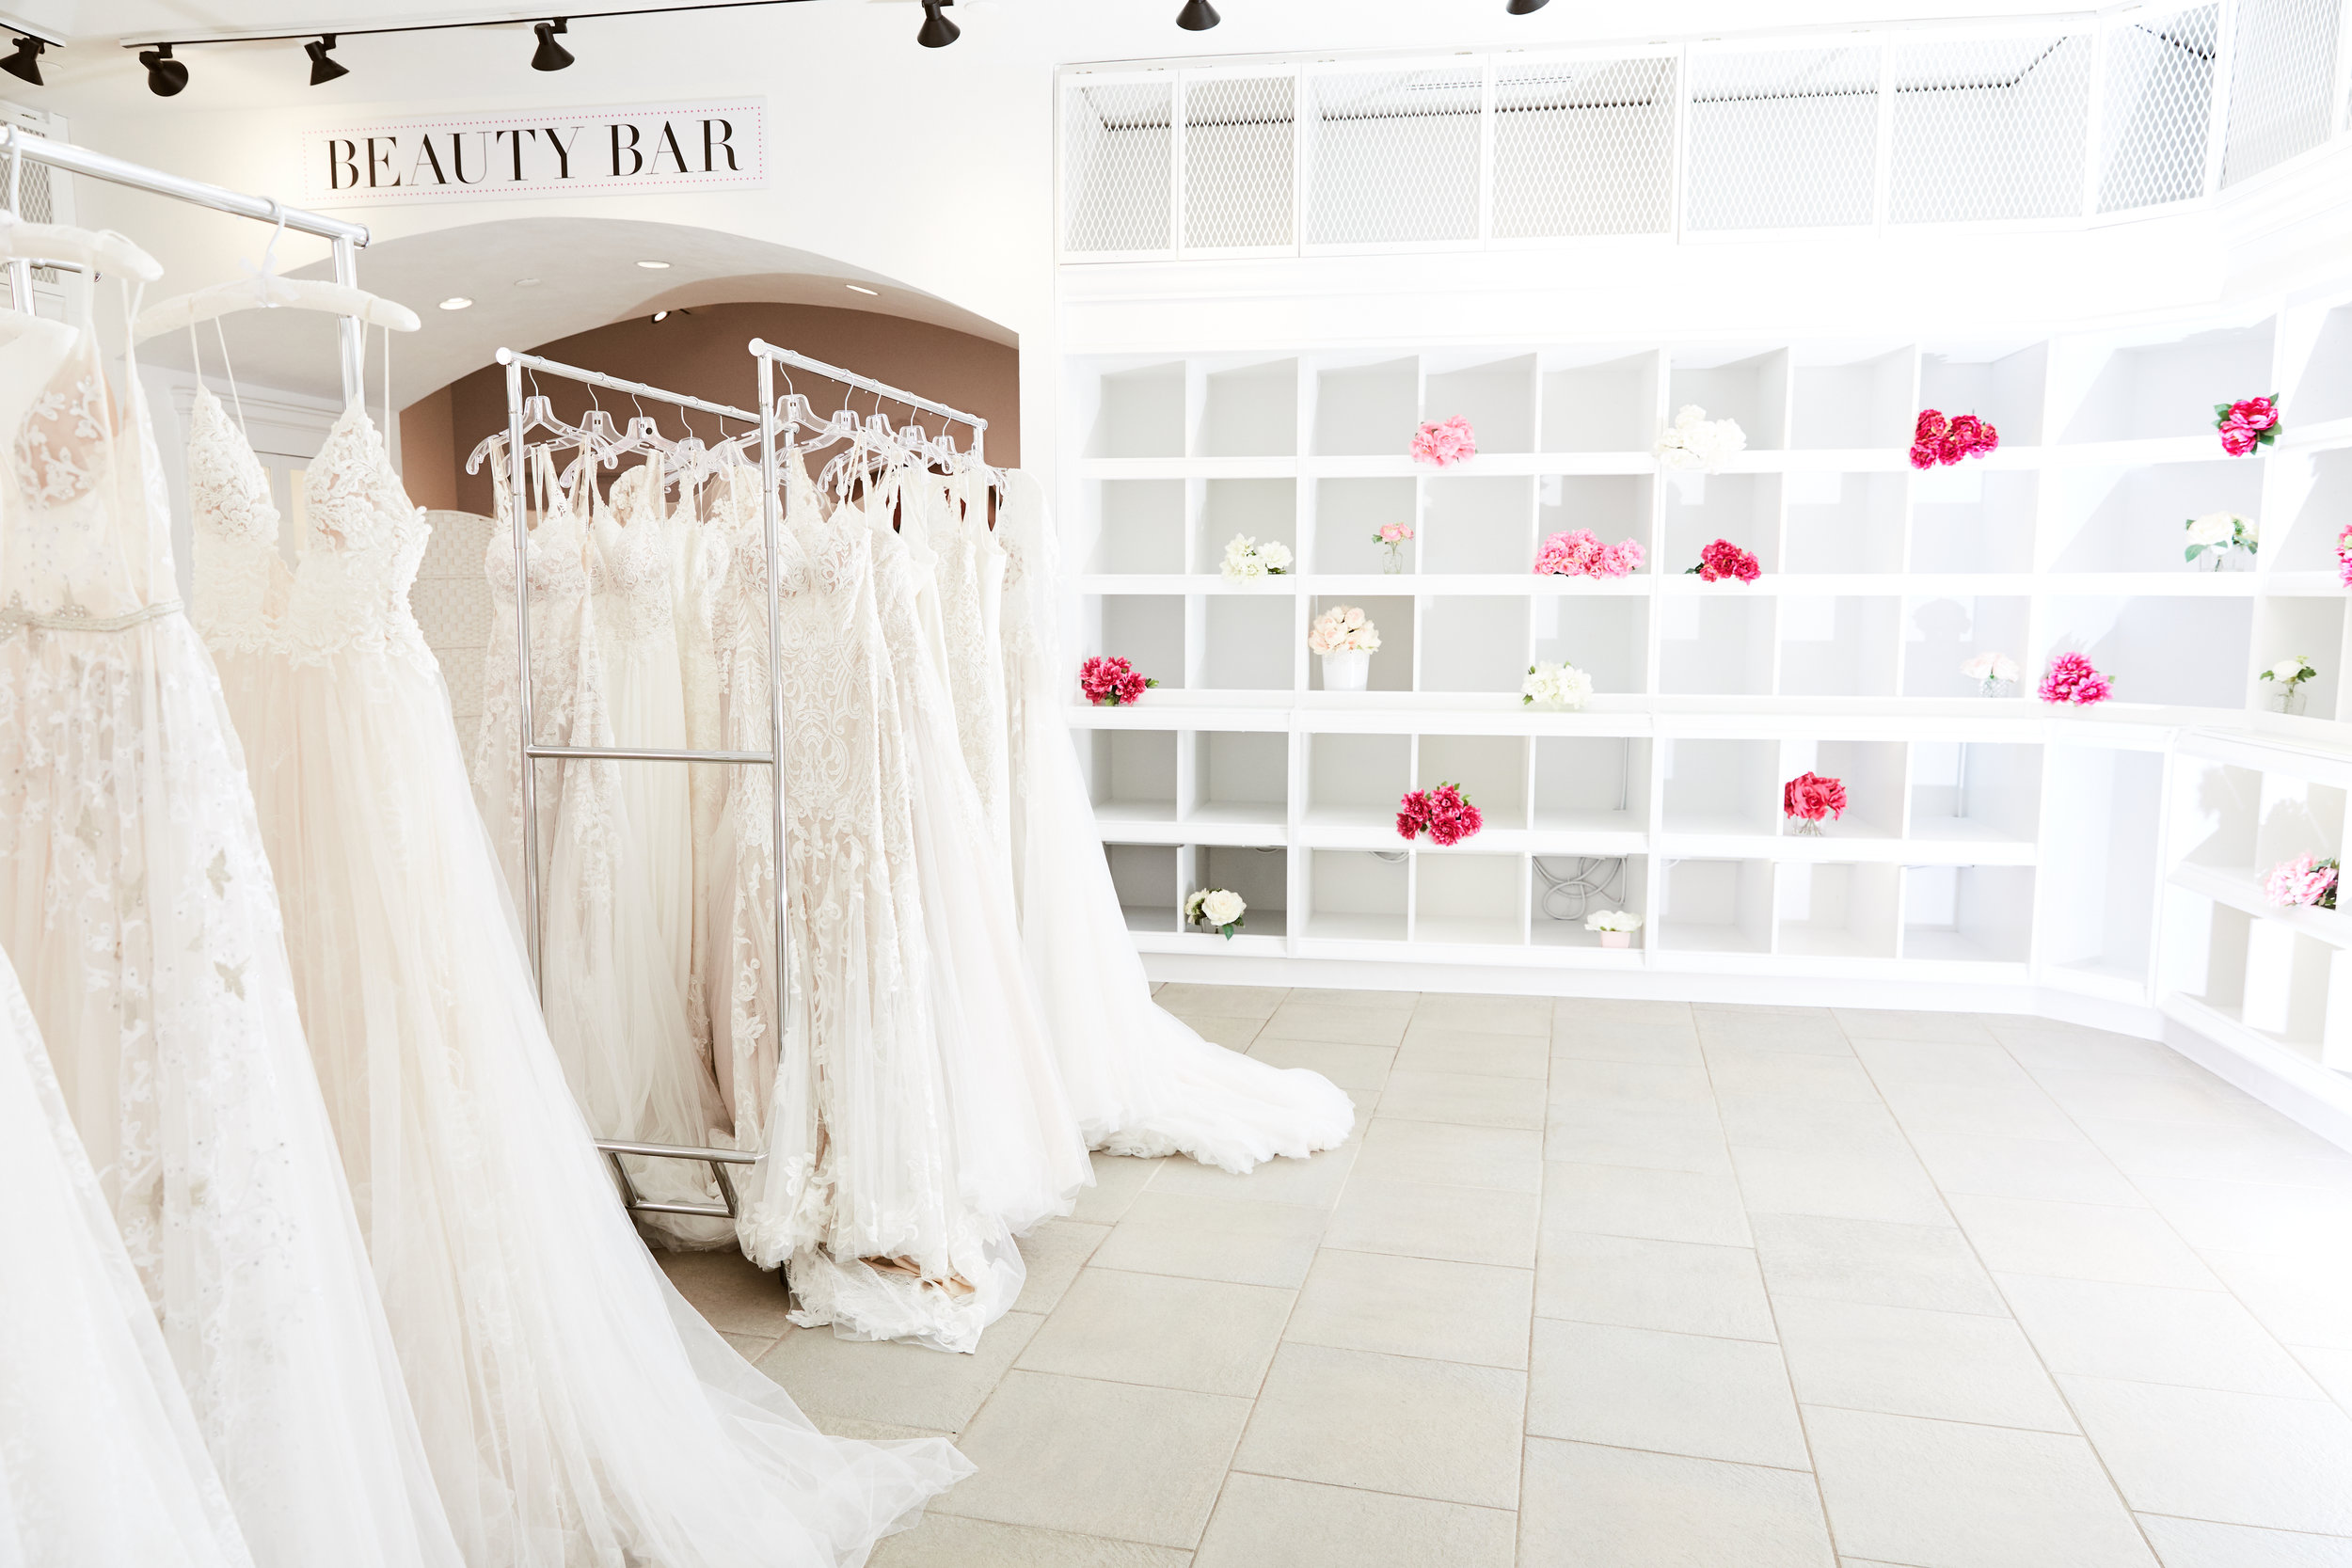 BAYVIEW VILLAGE -WEDDINGBELLS POPUP (KATHERINE HOLLAND, 2019) 59.jpg